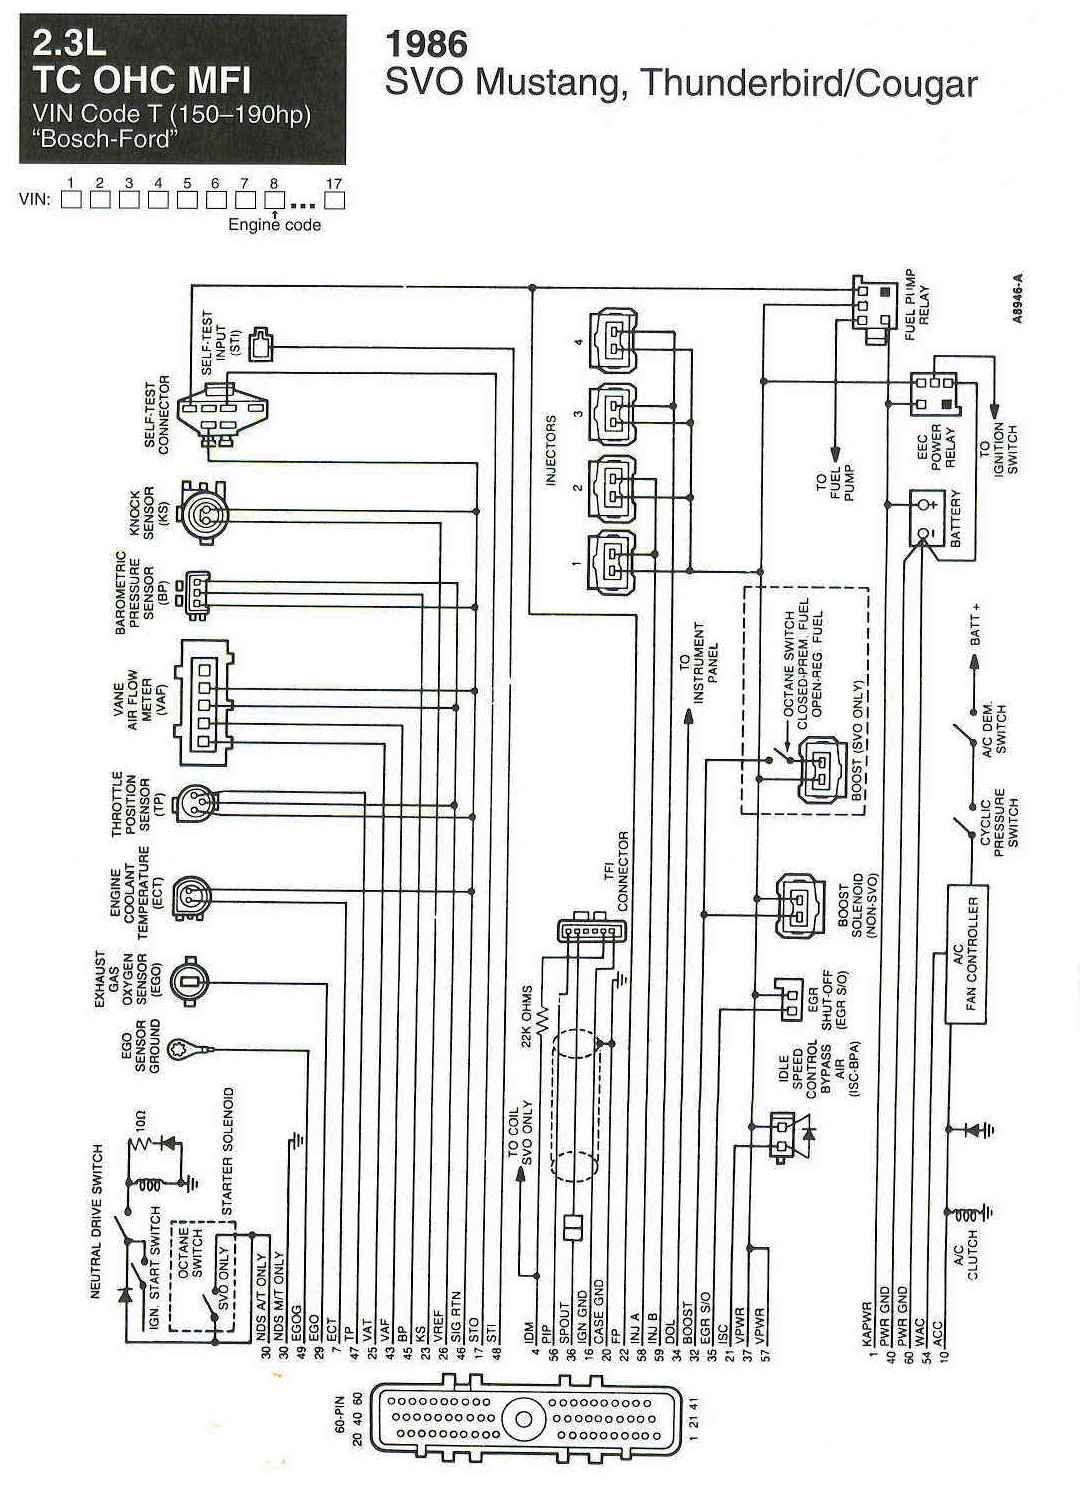 69858d1242761722 wiring diagrams svo pe pinout wiring diagrams for svo ford mustang forum svo wiring harness at eliteediting.co